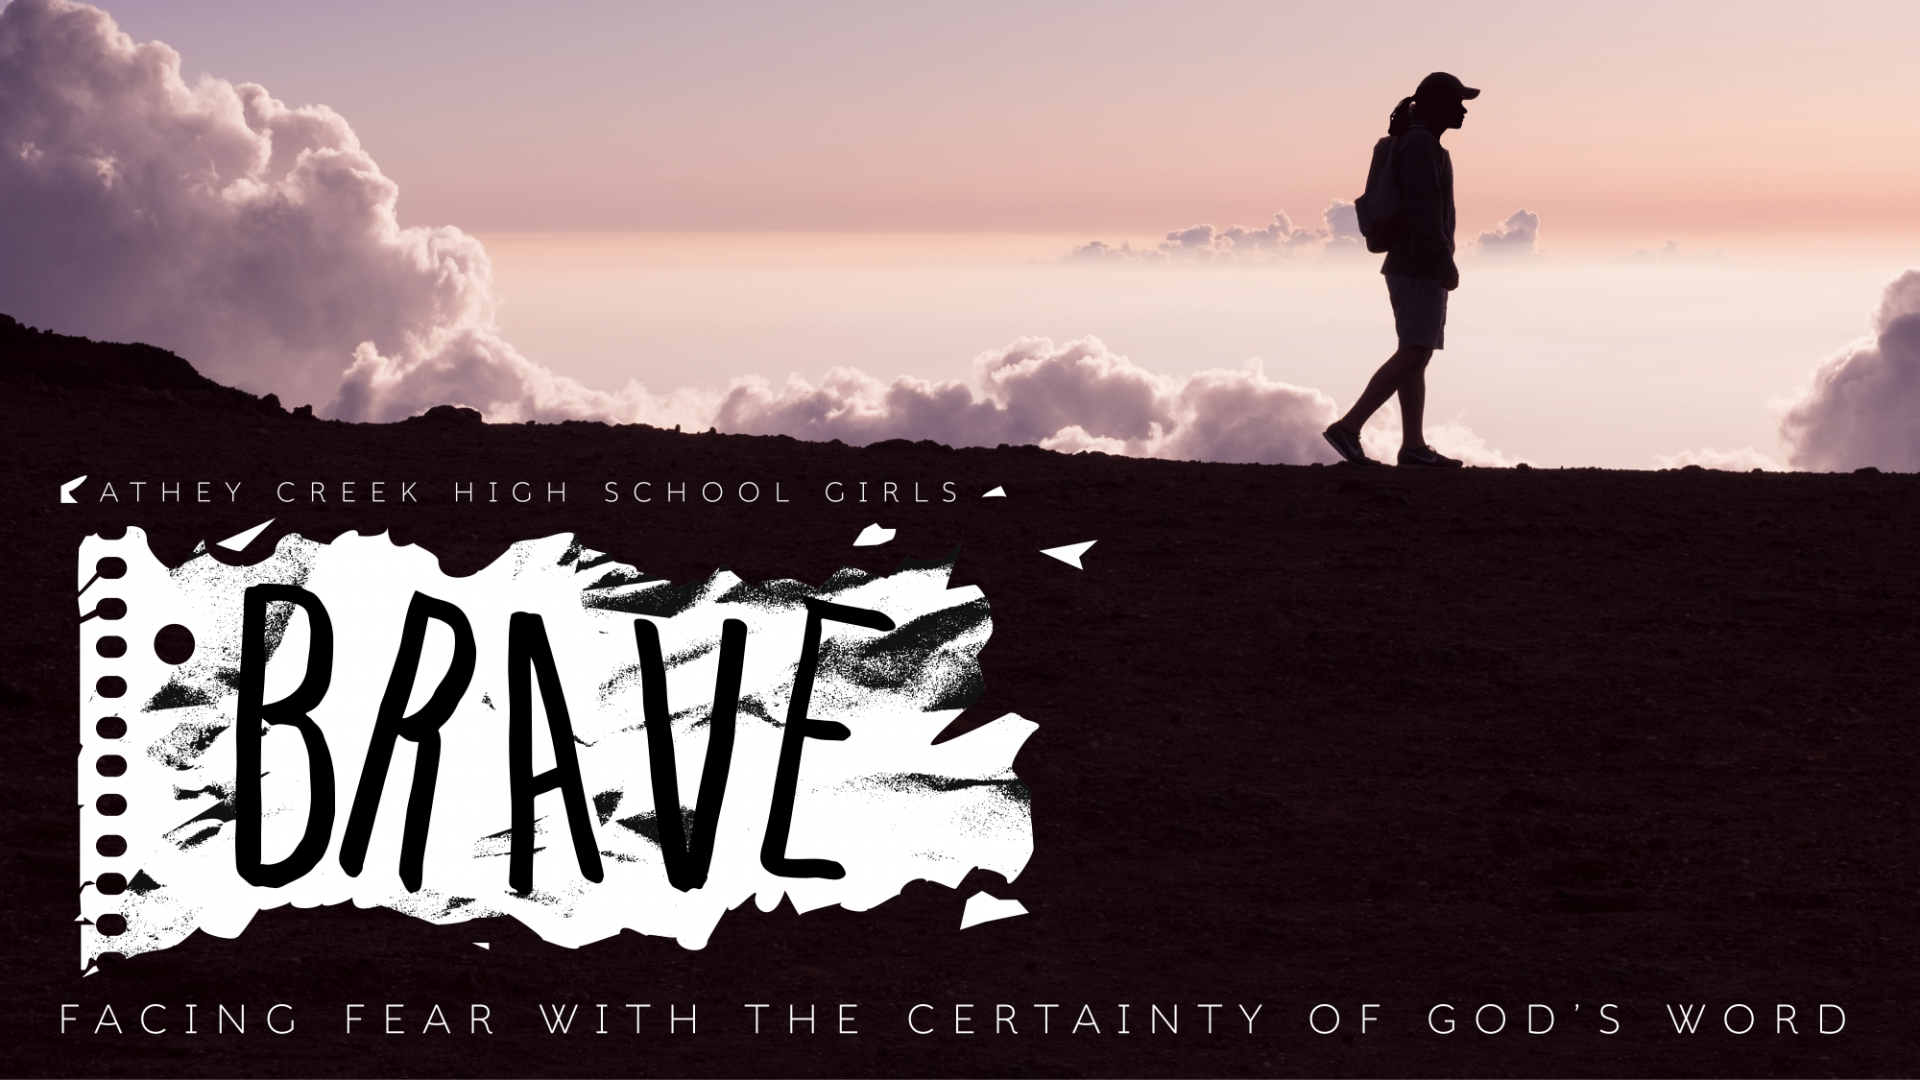 Poster for Brave: Facing Fear With The Certainty of God's Word